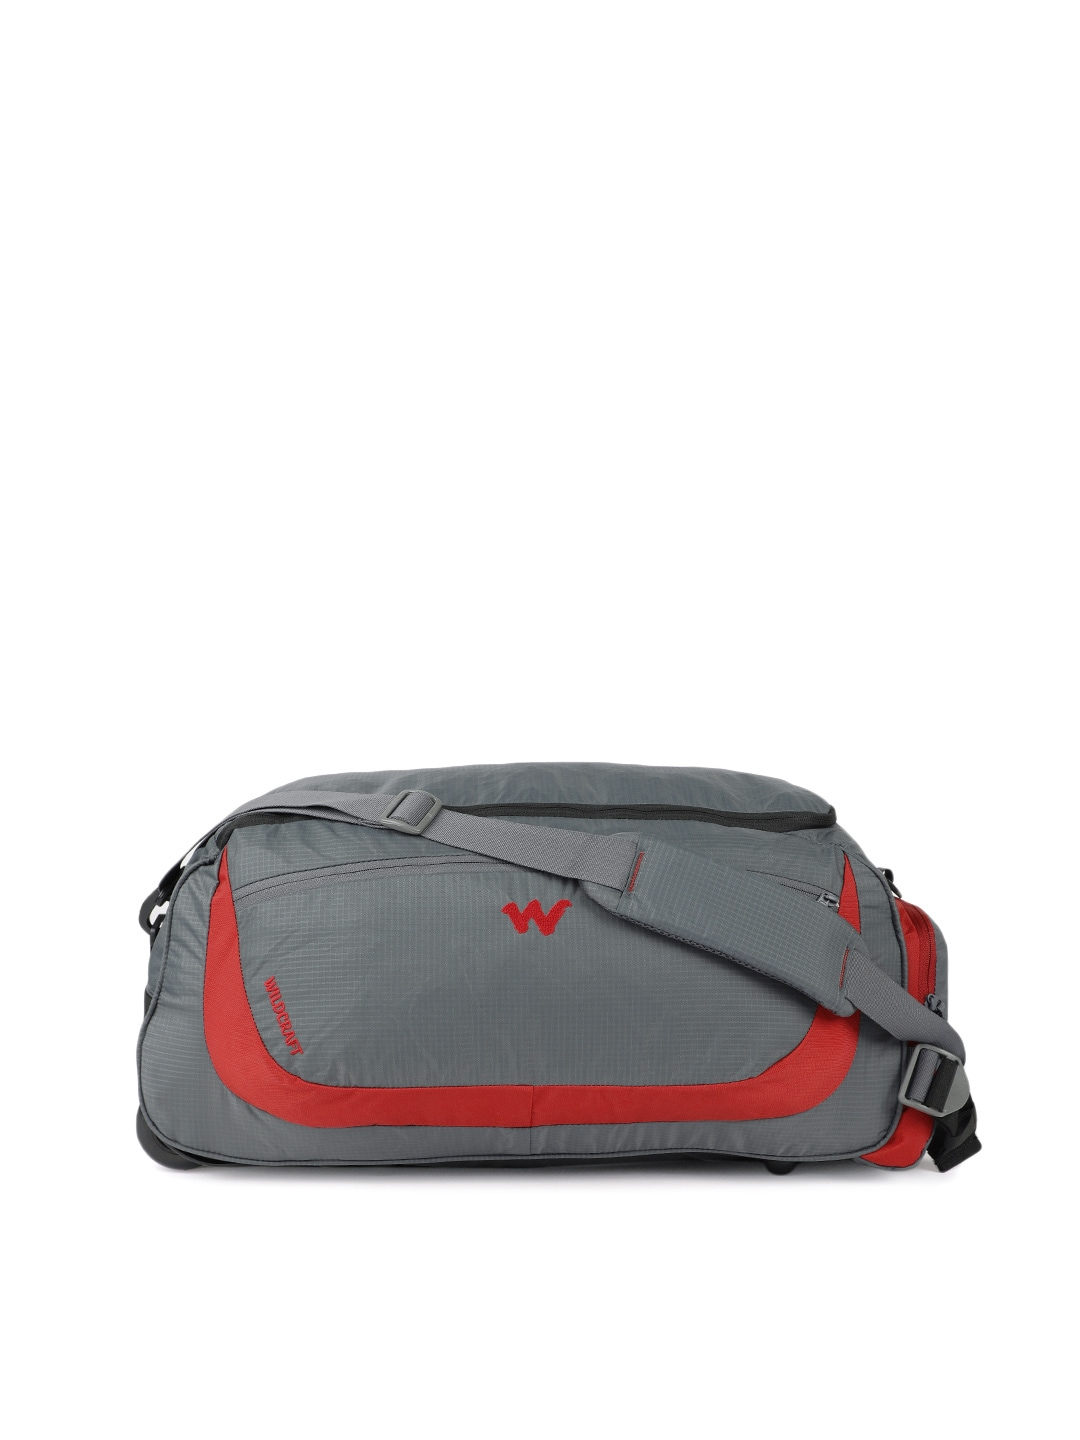 Wildcraft Travel Bags - Buy Wildcraft Travel Bags online in India 16b58e6292dc8